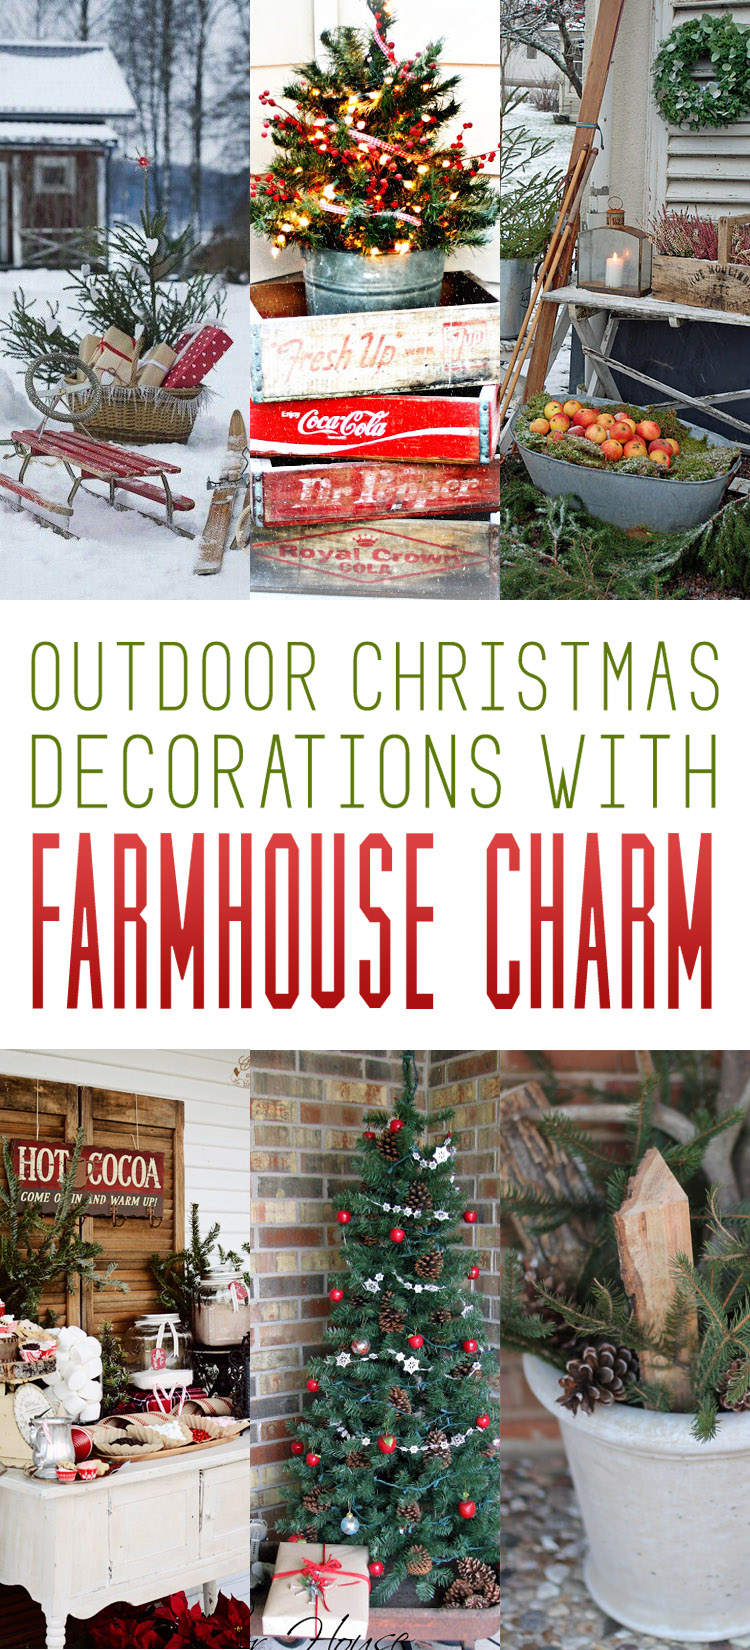 http://thecottagemarket.com/wp-content/uploads/2015/10/FarmhouseChristmas-TOWER-00001.jpg